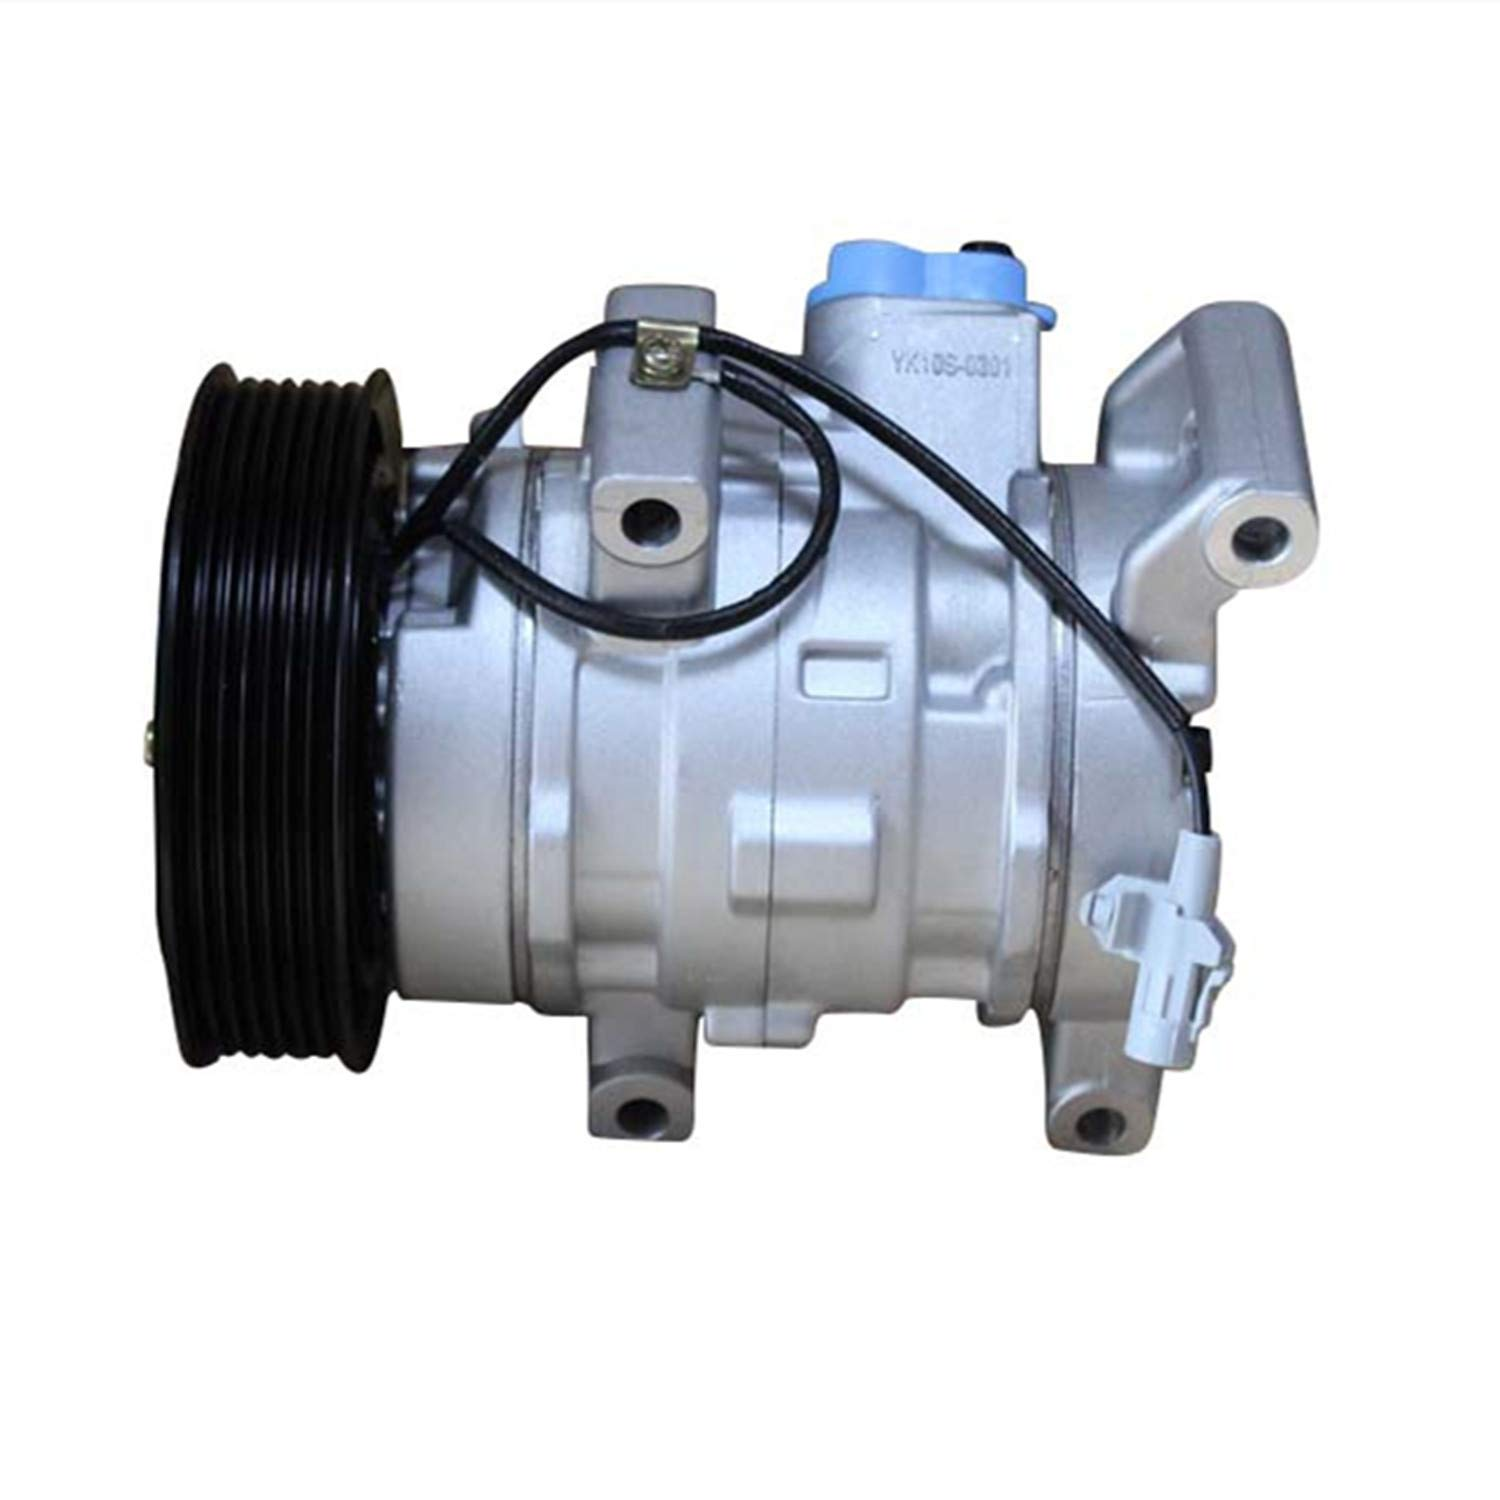 447260-8020 Air Conditioner Compressor Diesel AC Compressor with Clutch Assy for Toyota hilux 2013 10S11C Air Conditioning Compressor Spare Parts with 3 Month Warranty